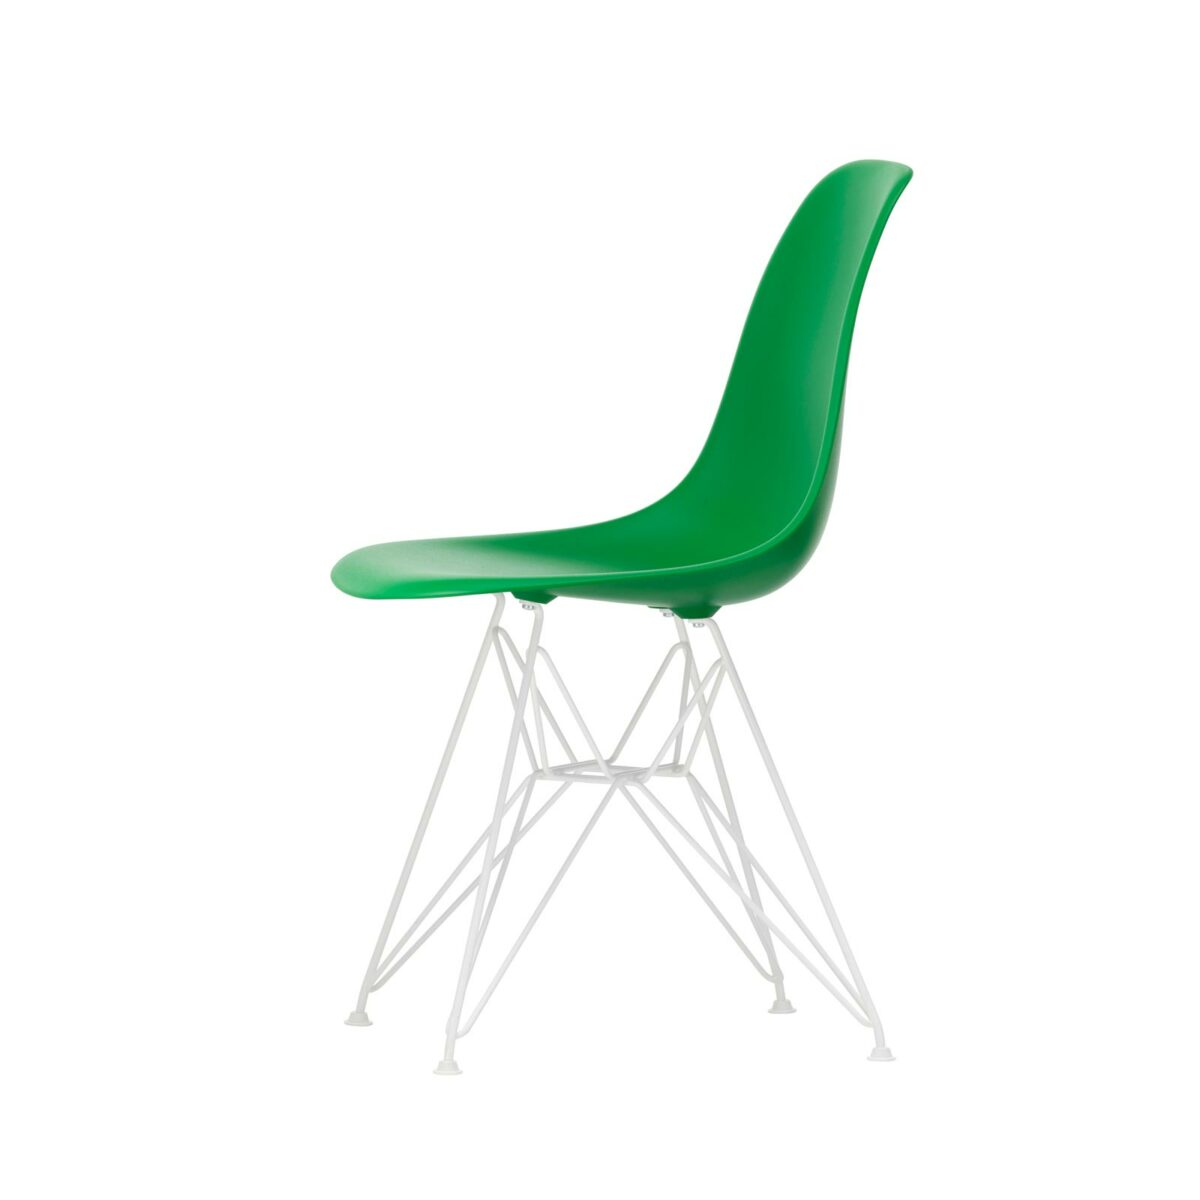 3034968 Eames Plastic Side Chair DSR 42 green 04 white powder coated left master